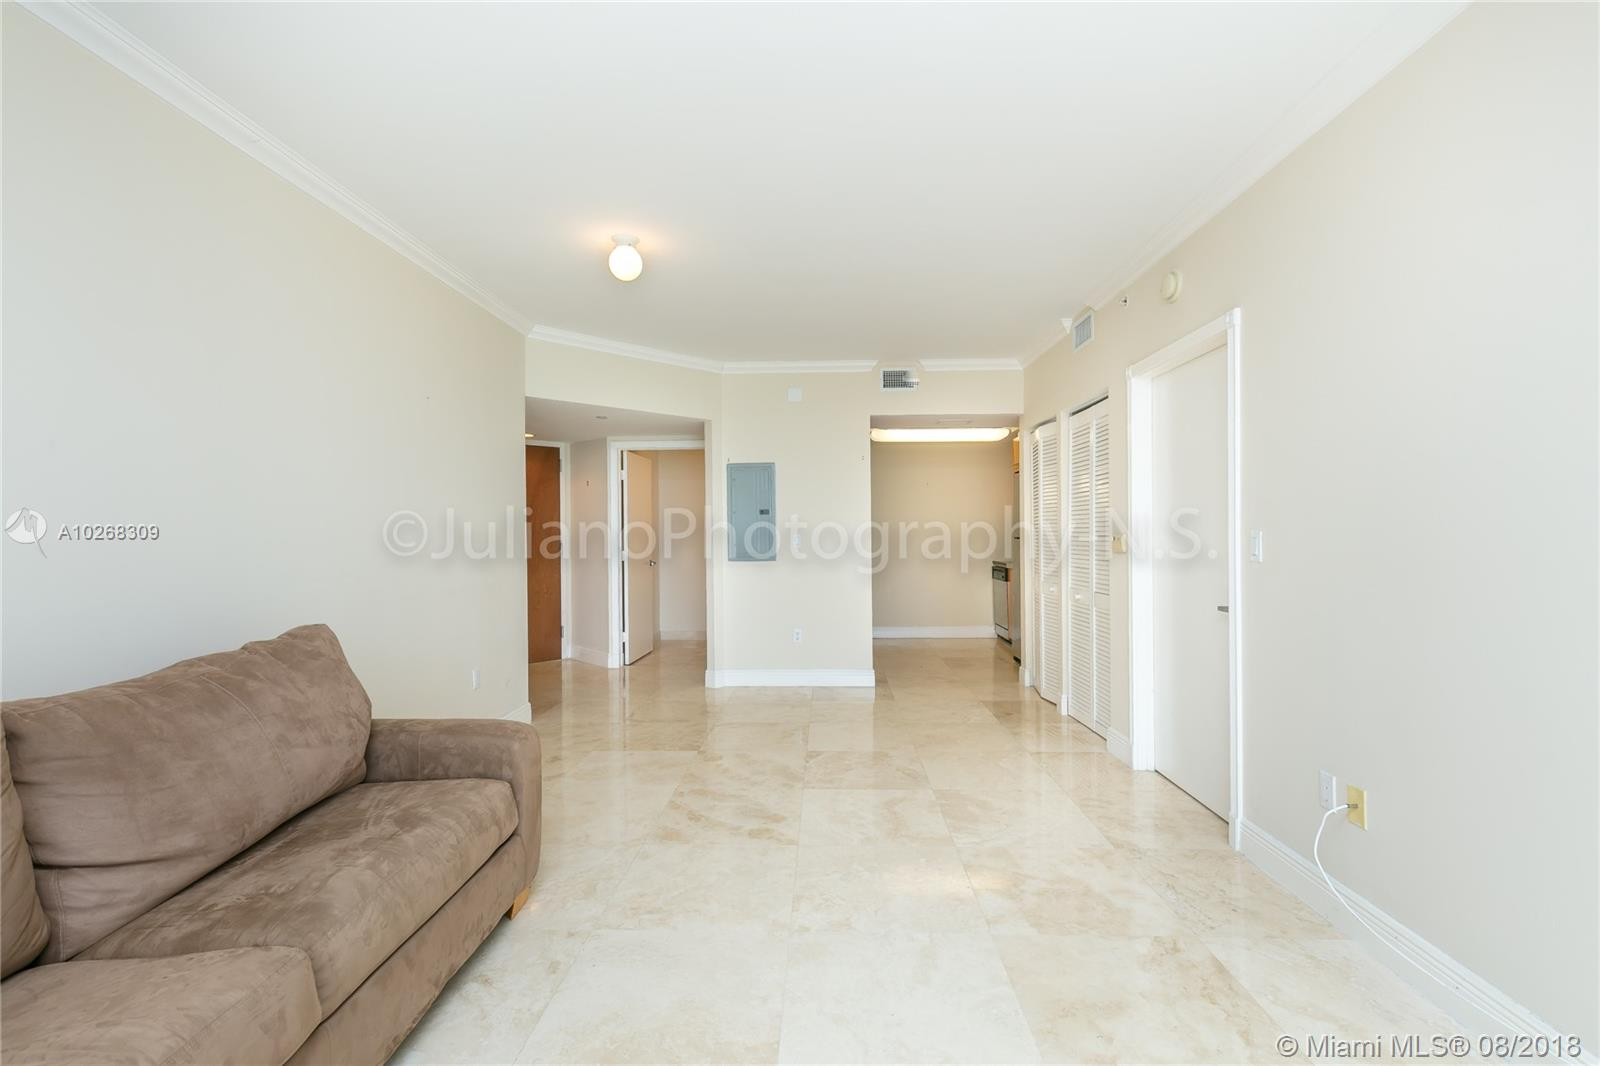 6365 Collins Ave # 2206, Miami Beach , FL 33141